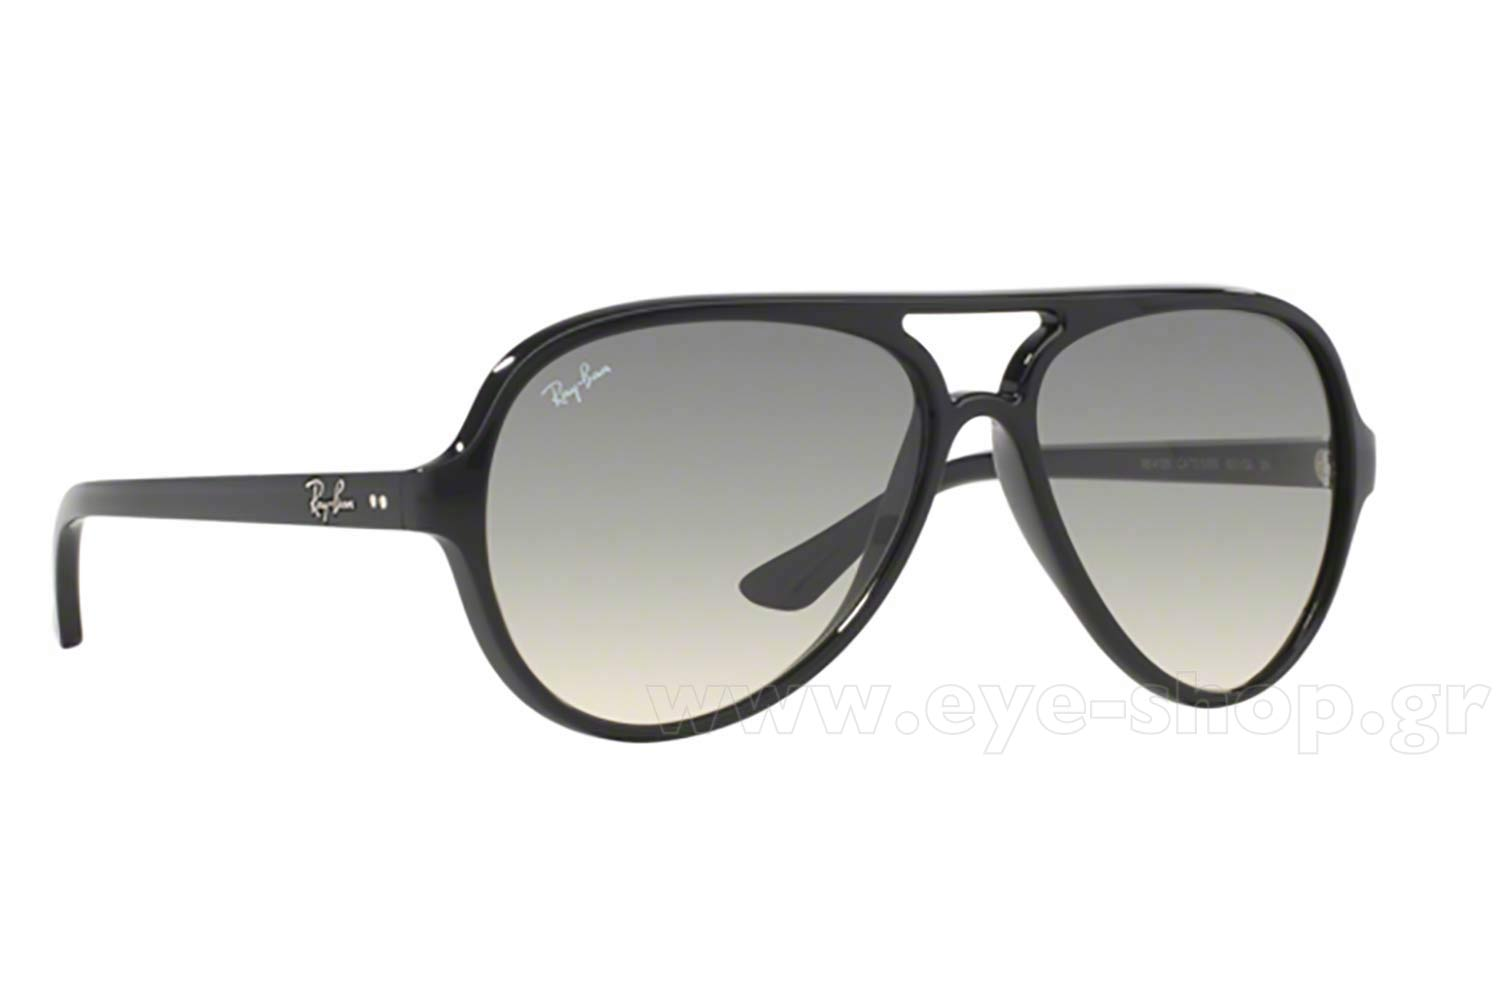 56a3c7c819 NICO-ROSBERG WEARING SUNGLASSES RAYBAN-4125-CATS-5000 sunglasses 601 32 -  59. Aviator